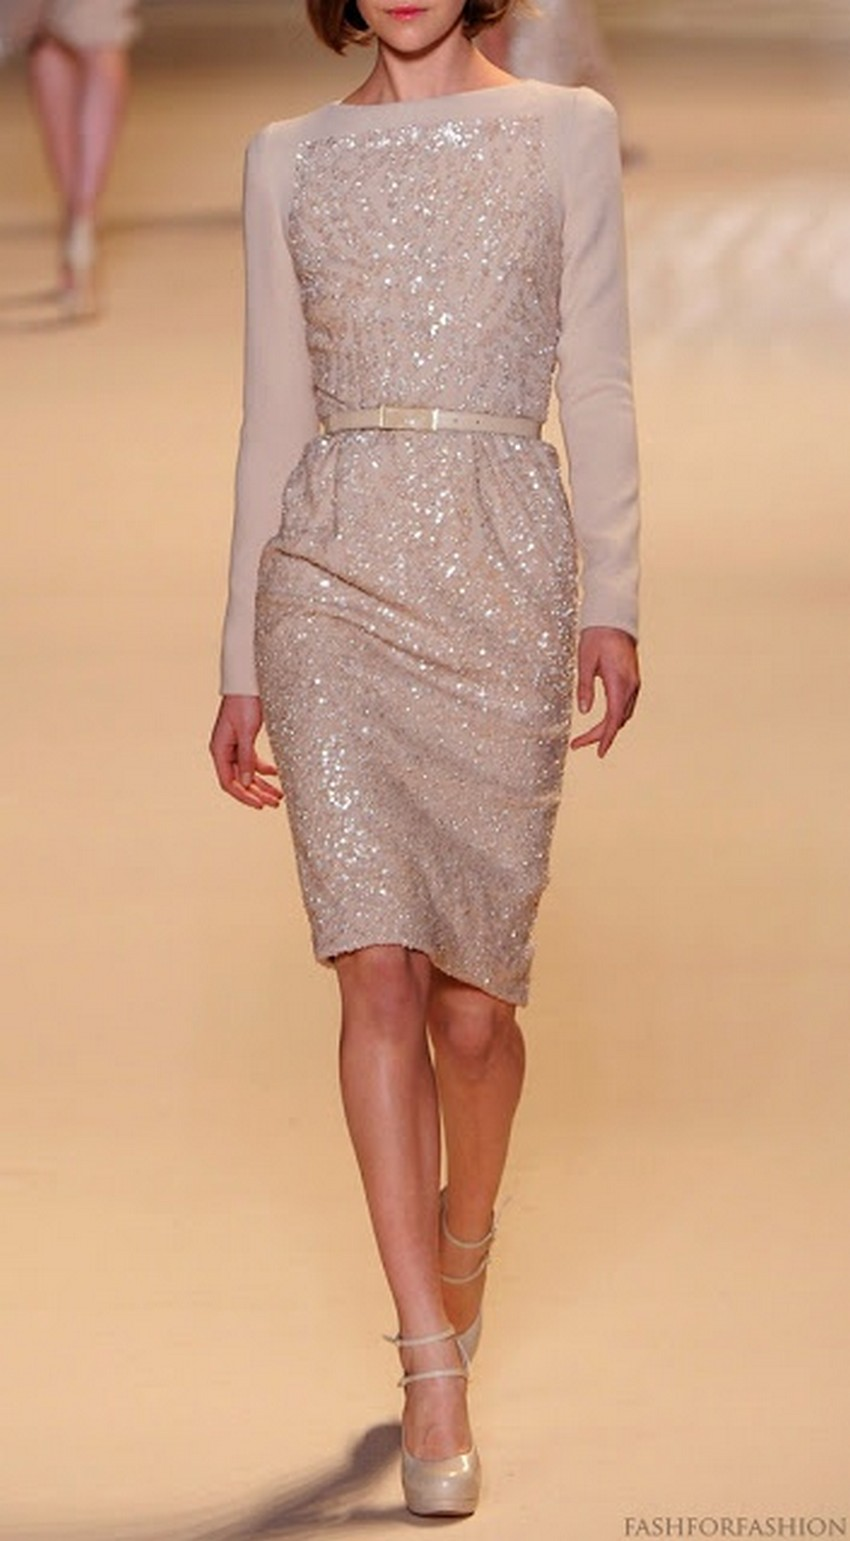 10. Sparkling | 10 Types of Dresses for Christmas Day | Image Source: http://fashforfashion.com